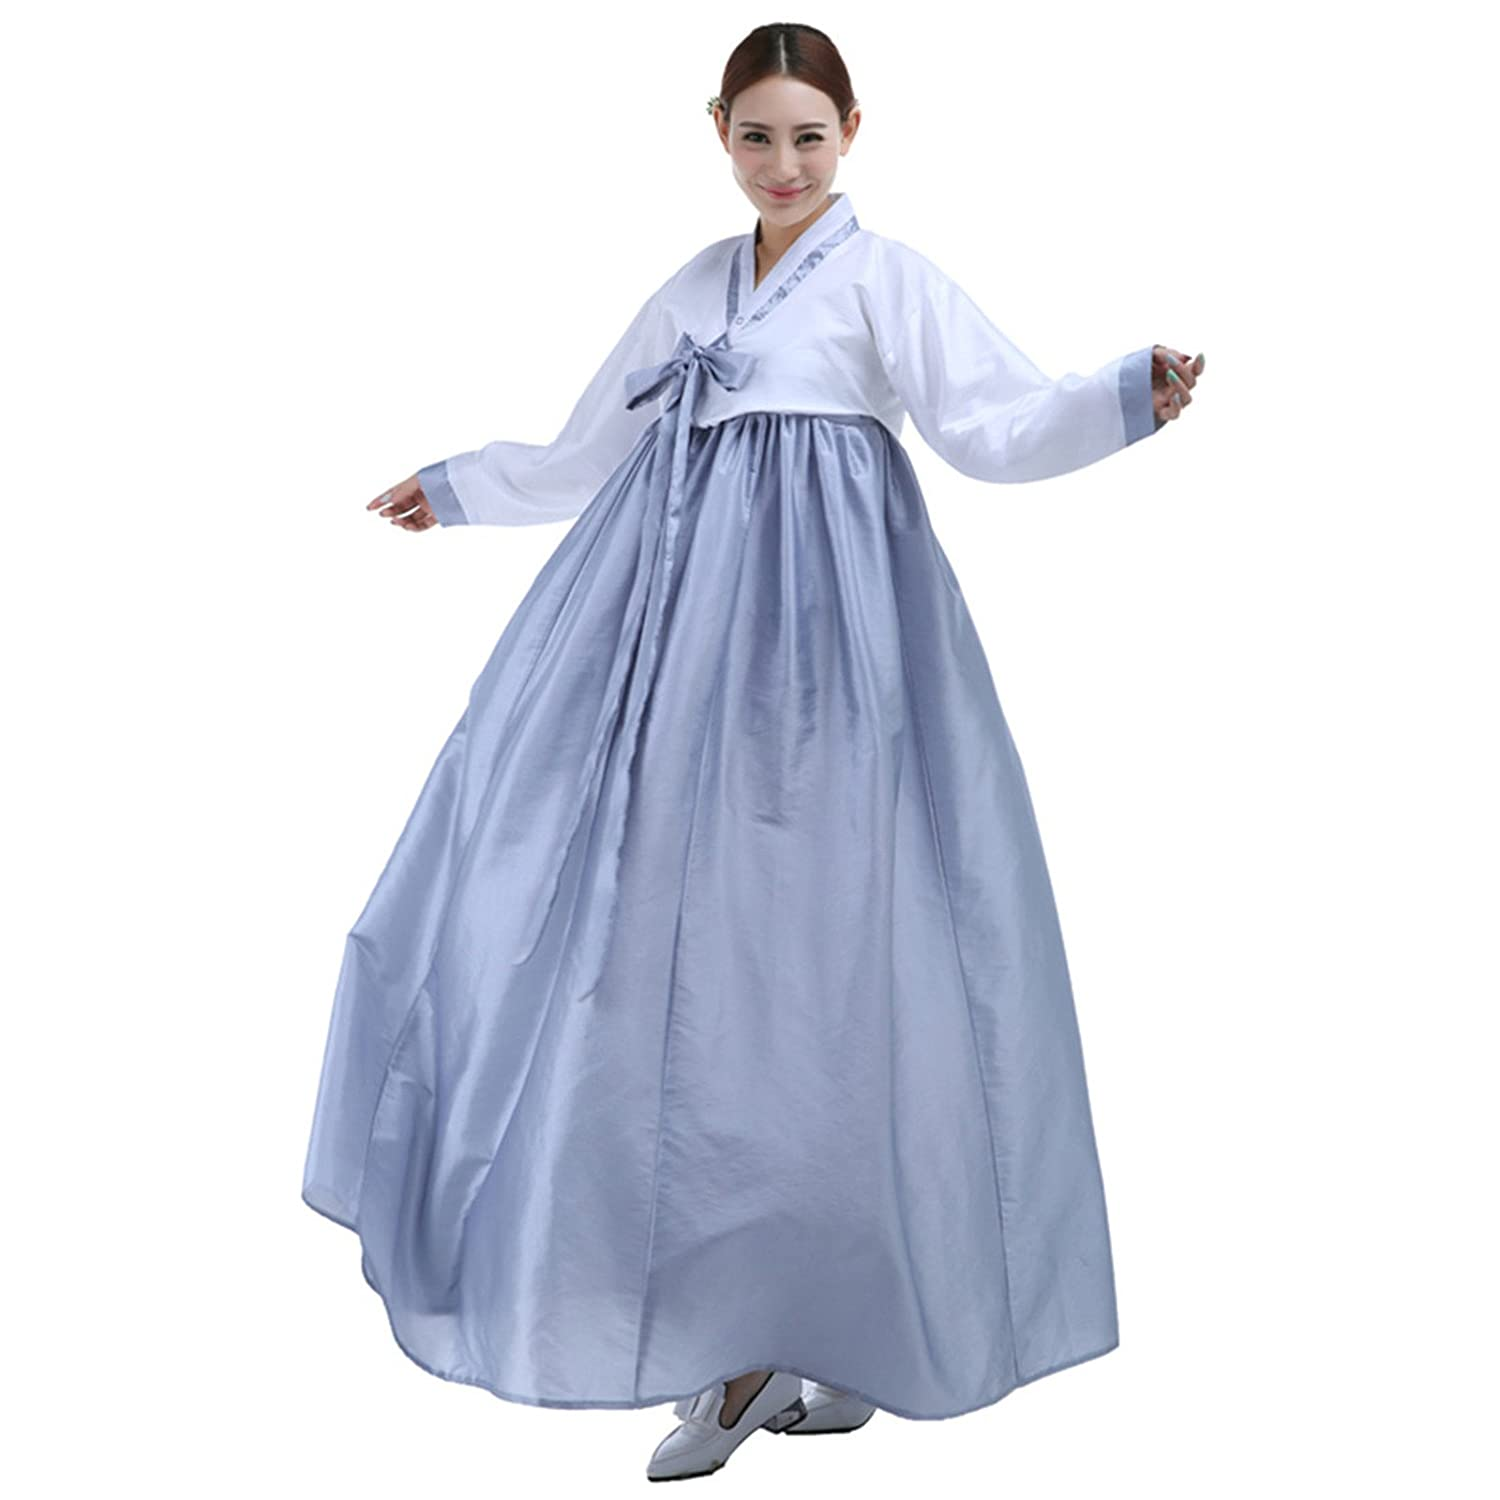 Lemail Womens Korean Hanbok Dress Long Sleeve Outfit Girl 10 Korea Traditional Costume Clothing